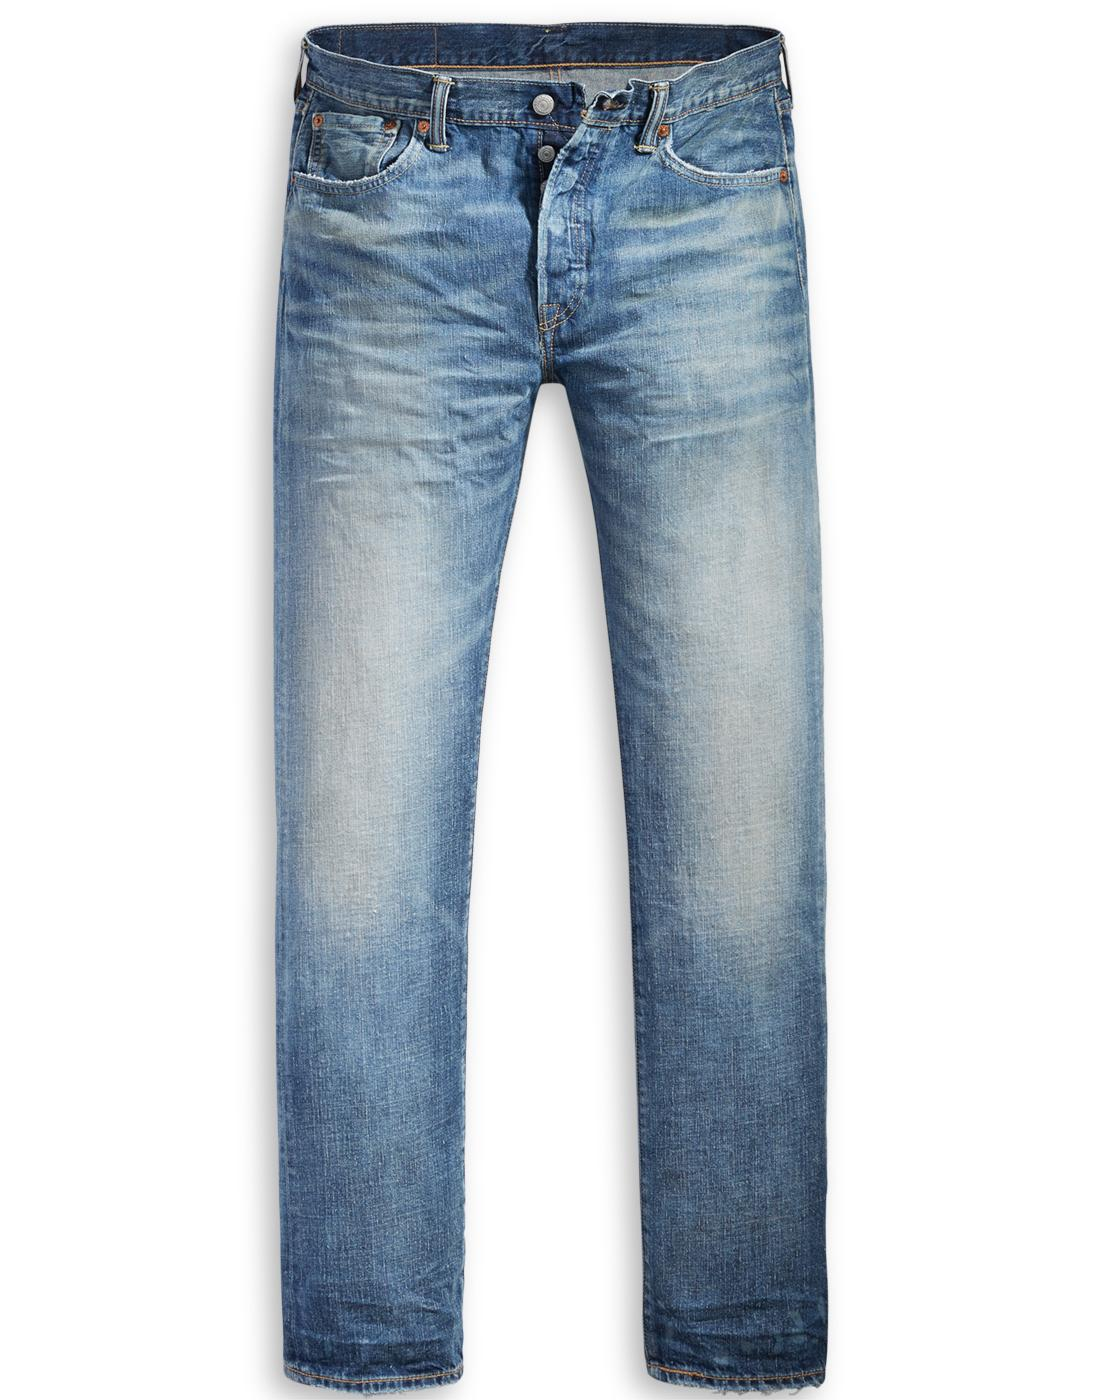 LEVI'S 501 Original Straight Jeans THE PATTERSON